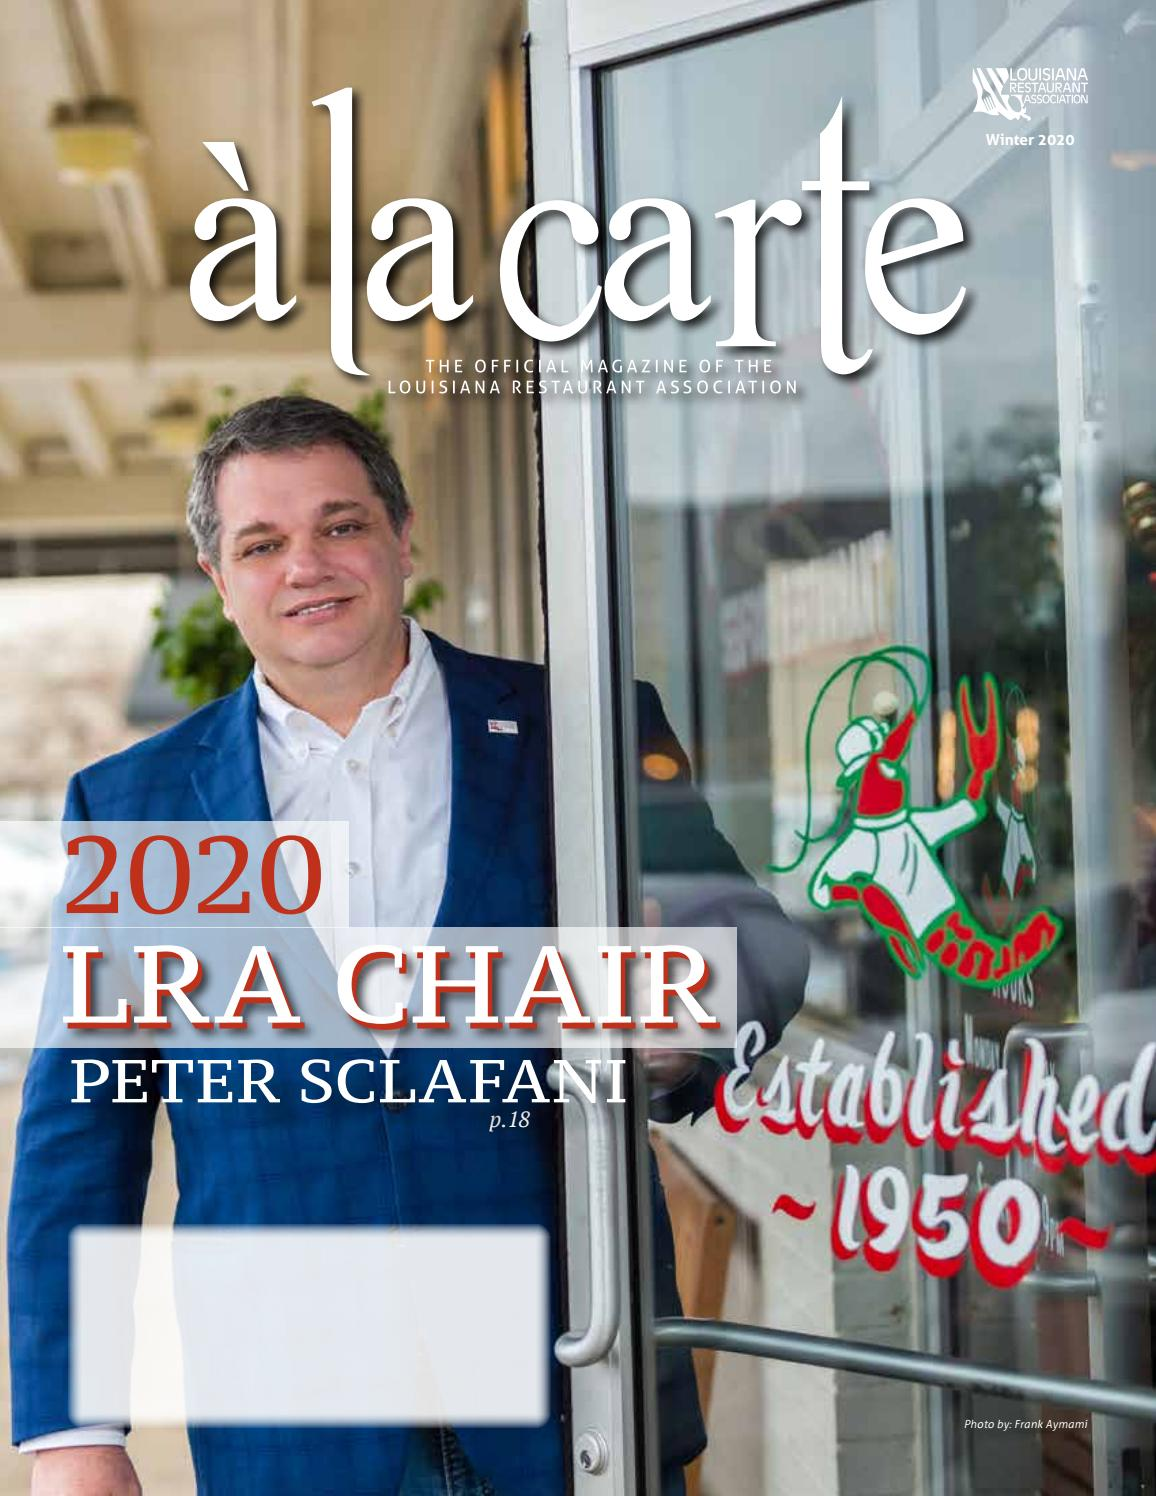 carte election legislative 2020 Winter 2020   a la carte by Louisiana Restaurant Association   issuu